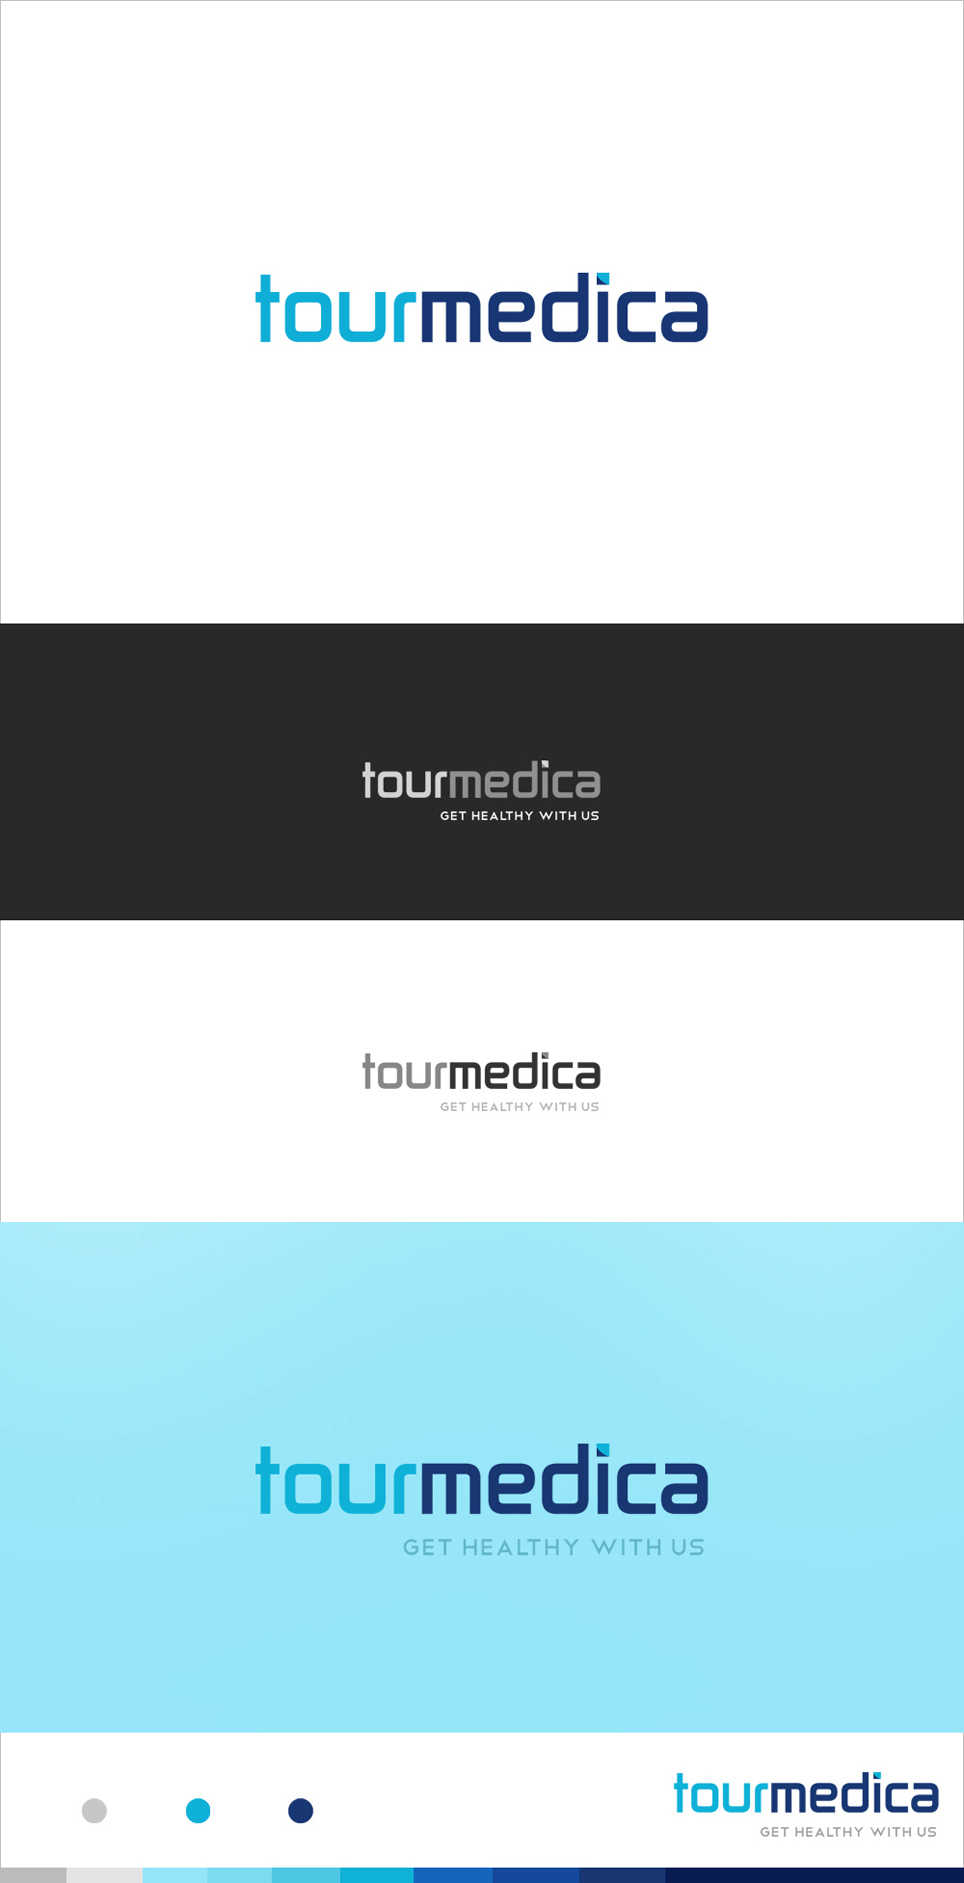 4 TOURMEDICA-1